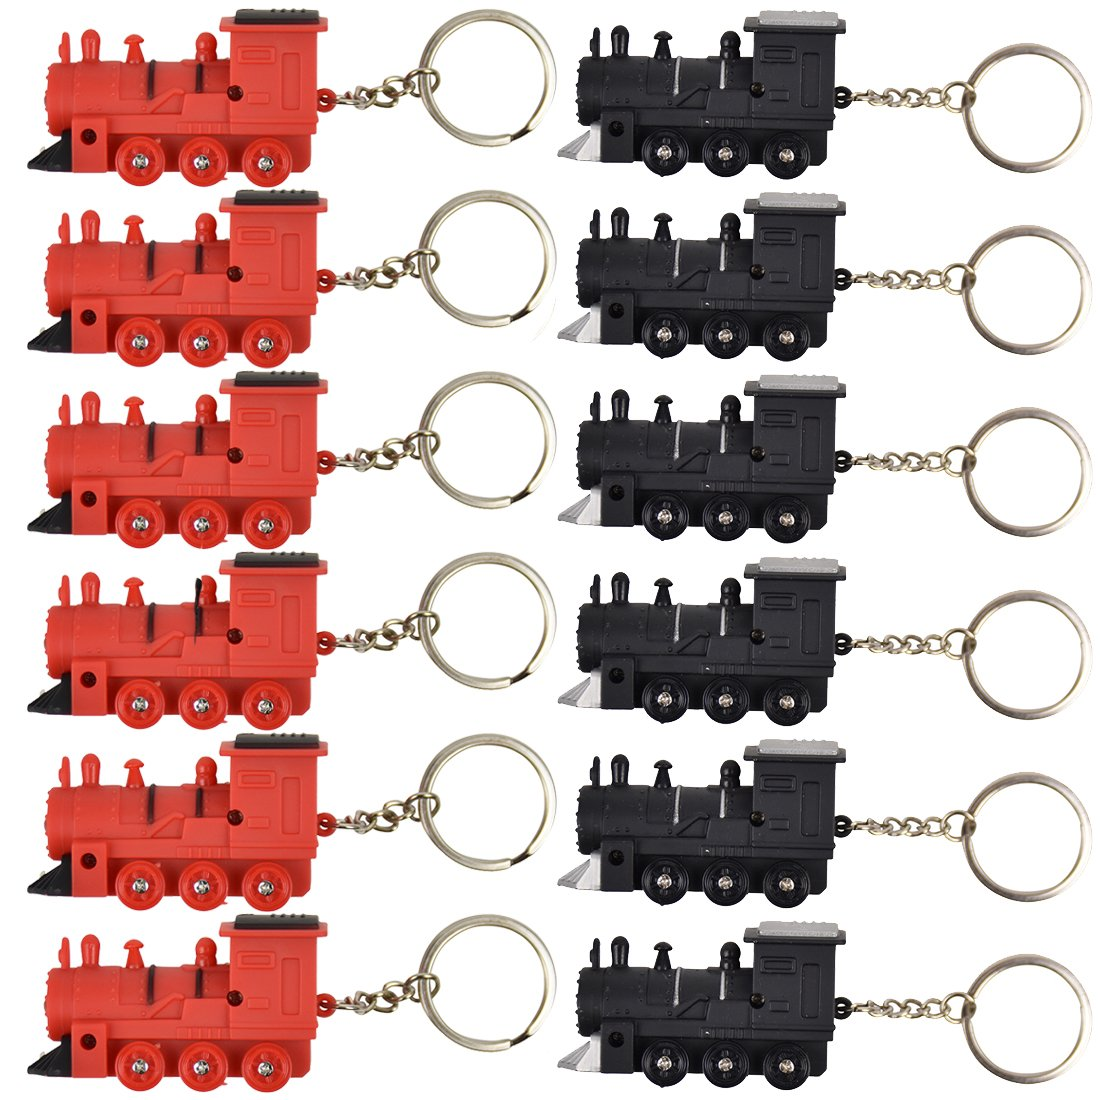 Train with Flashing Lights Backpack Keychain - Set of 12 - Black & Red